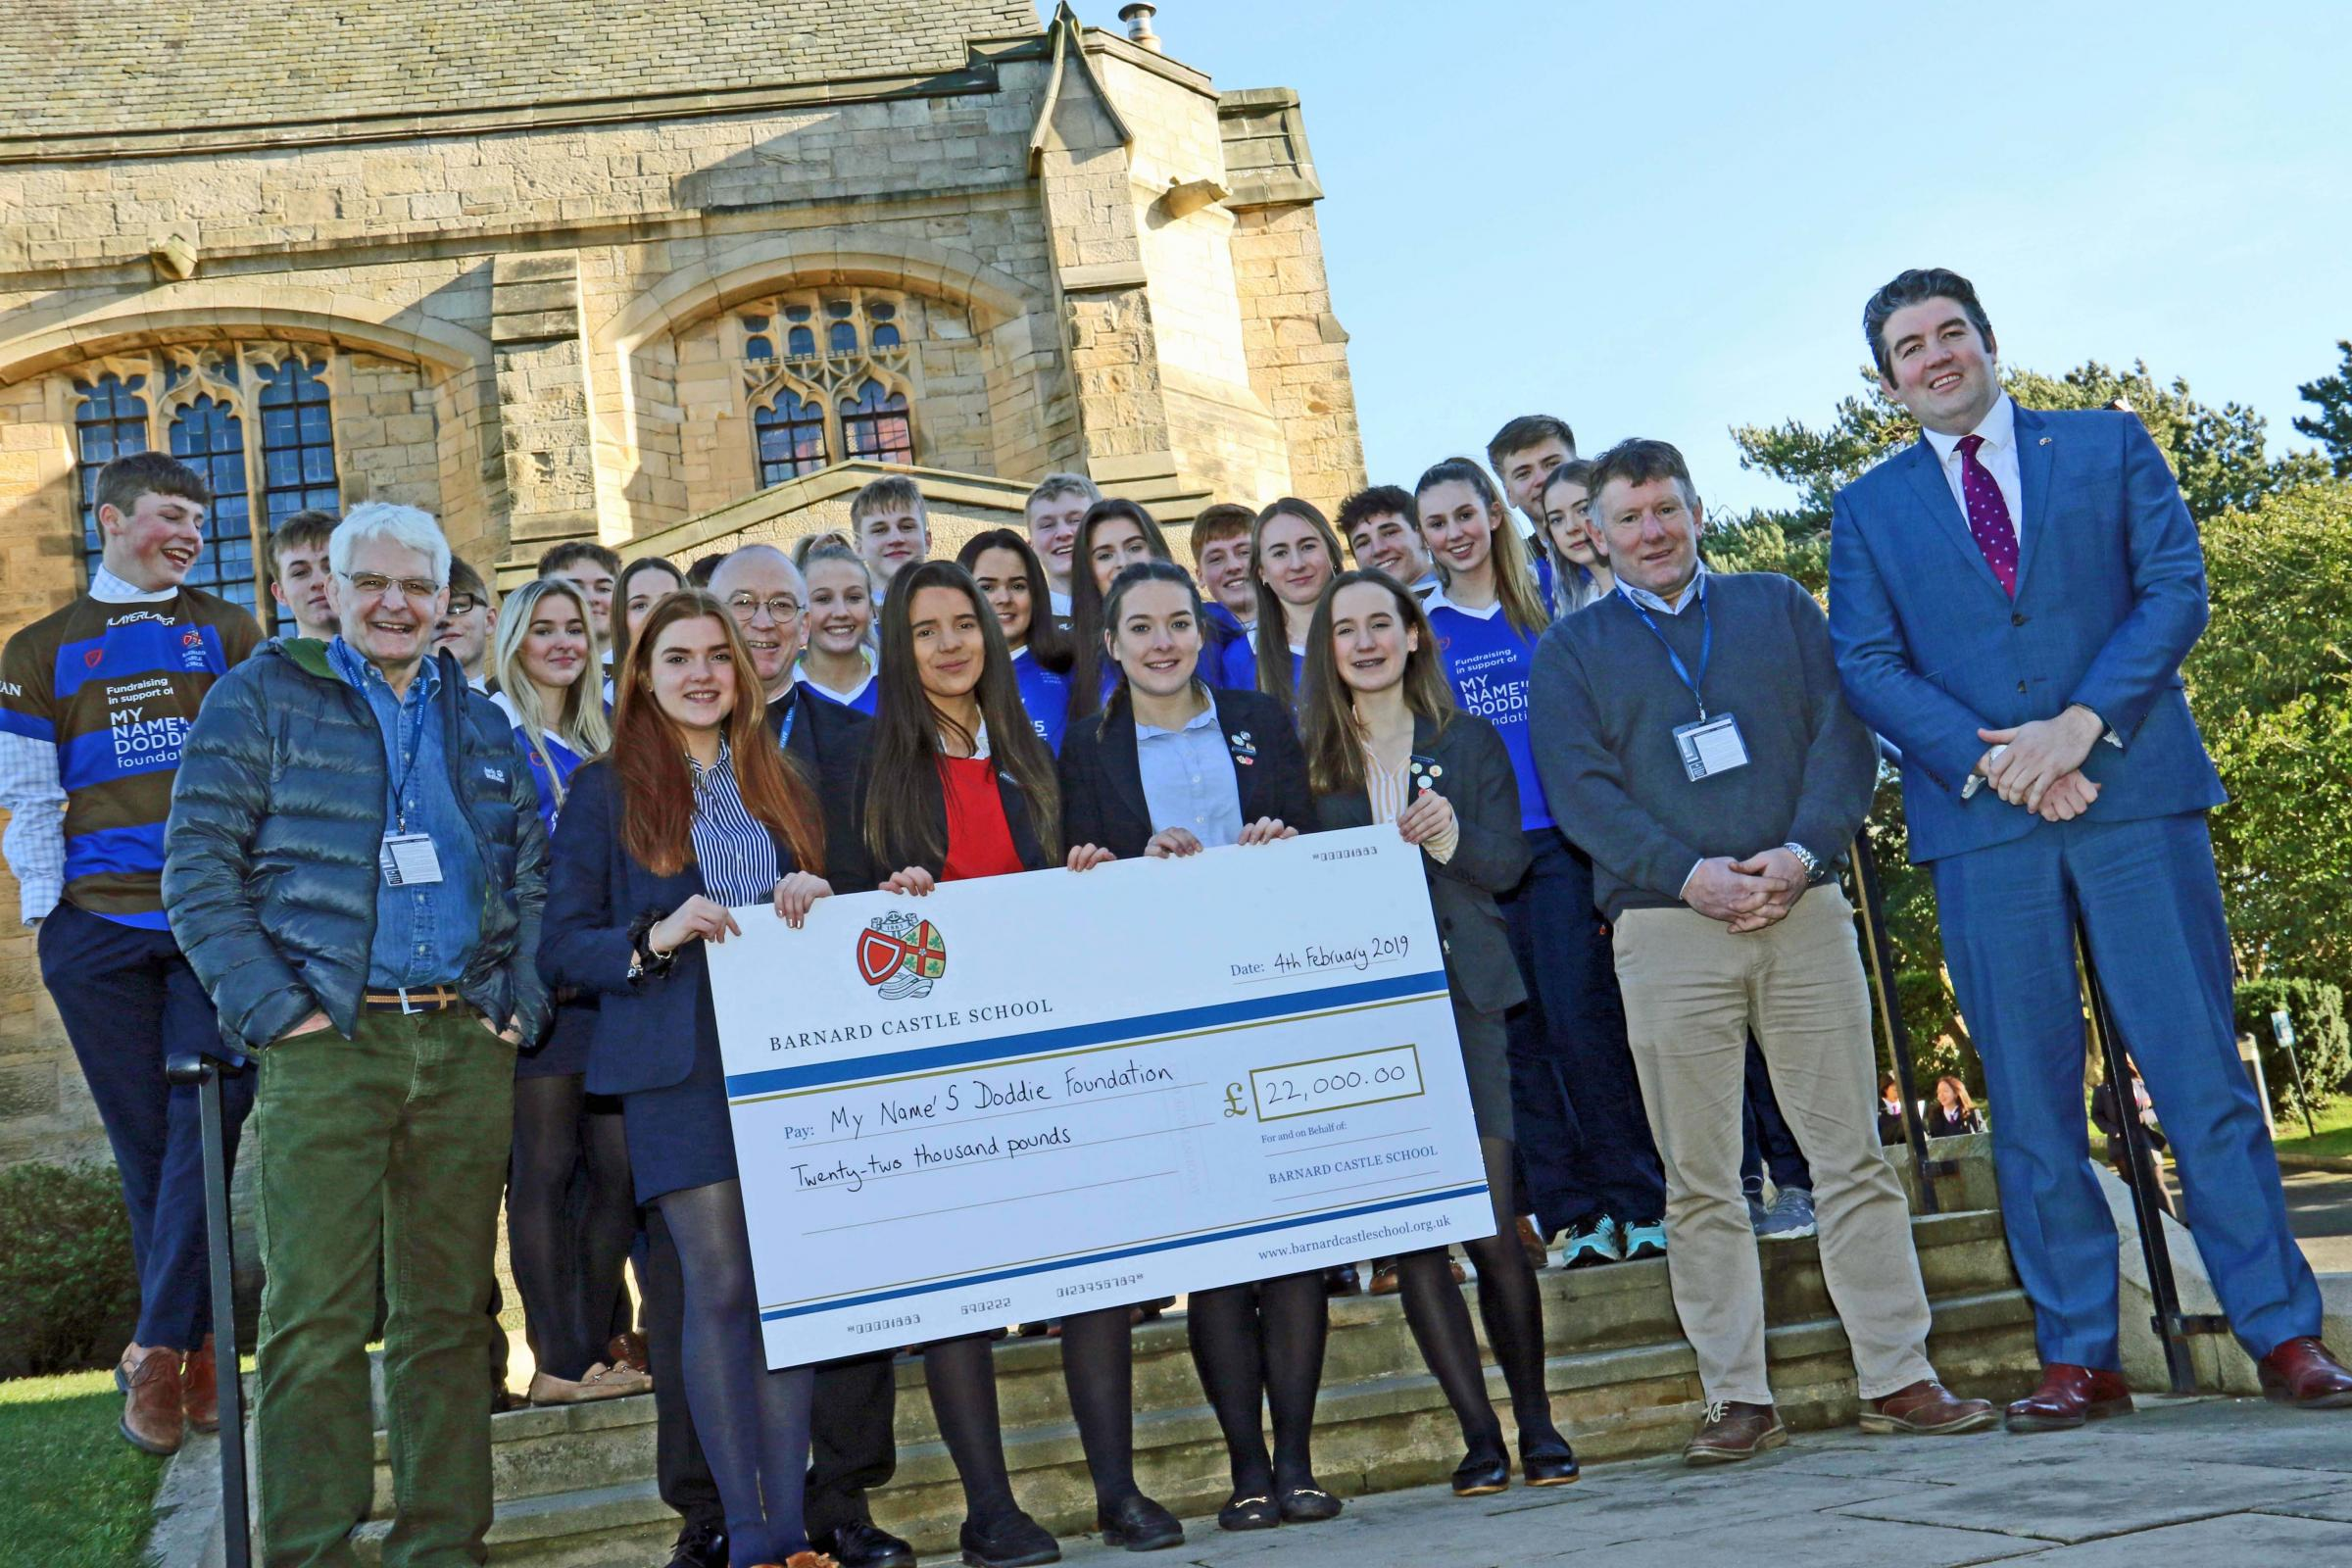 CHARITY MONEY: Barnard Castle School children and staff present a record-breaking cheque for £22,000 to the My Name'5 Doddie Foundation to fund research into motor neurone disease